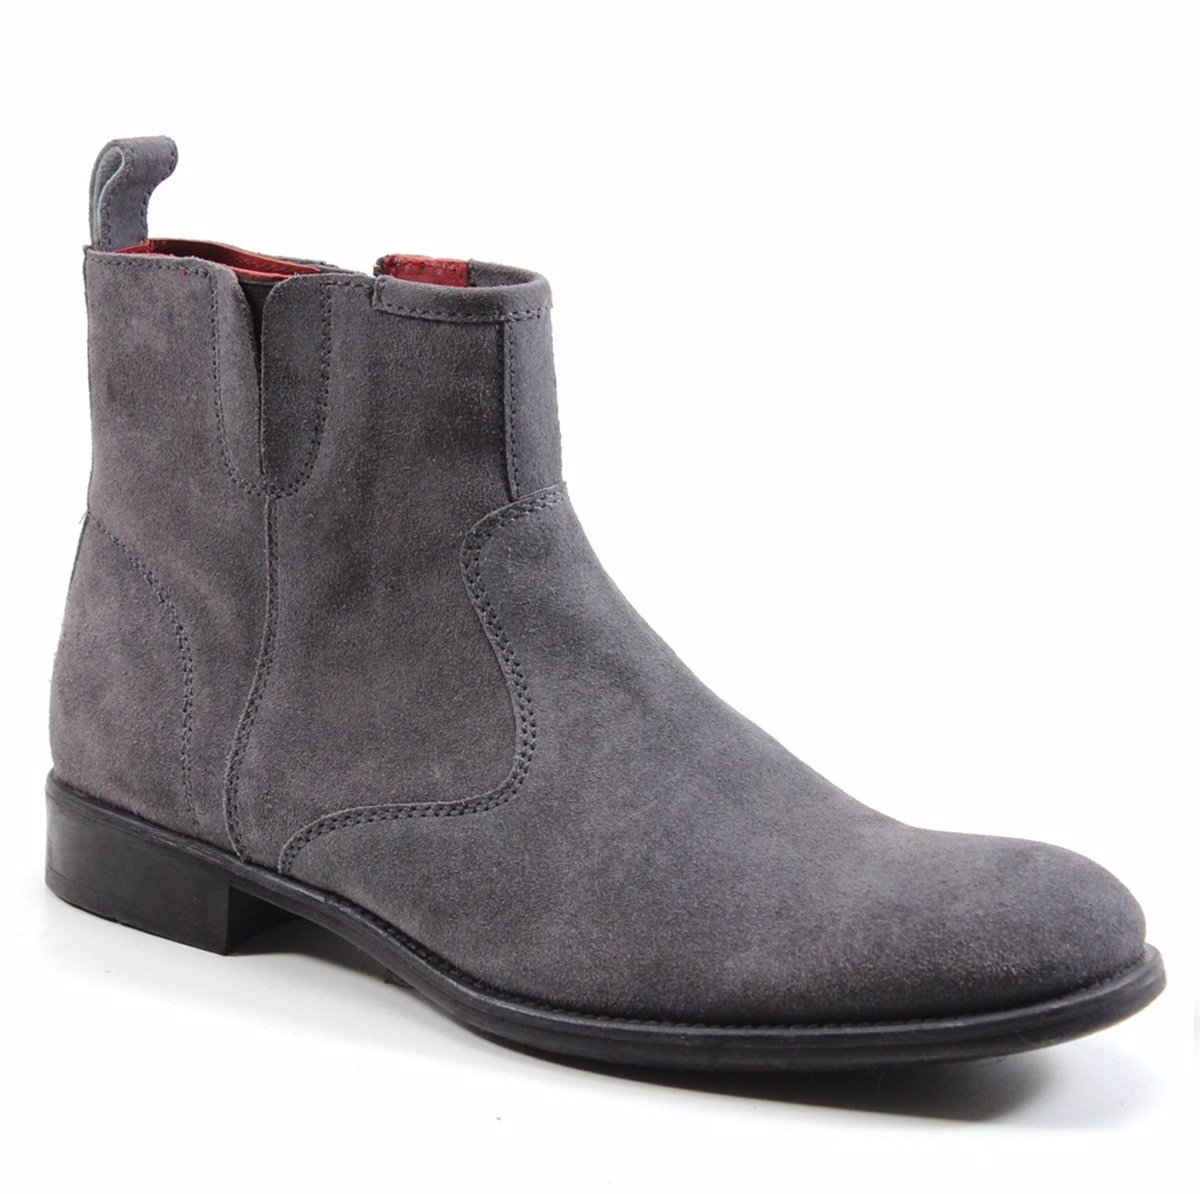 bdadee6b831 Preview with Zoom. Testosterone. Now Daze Suede Boots Grey Suede